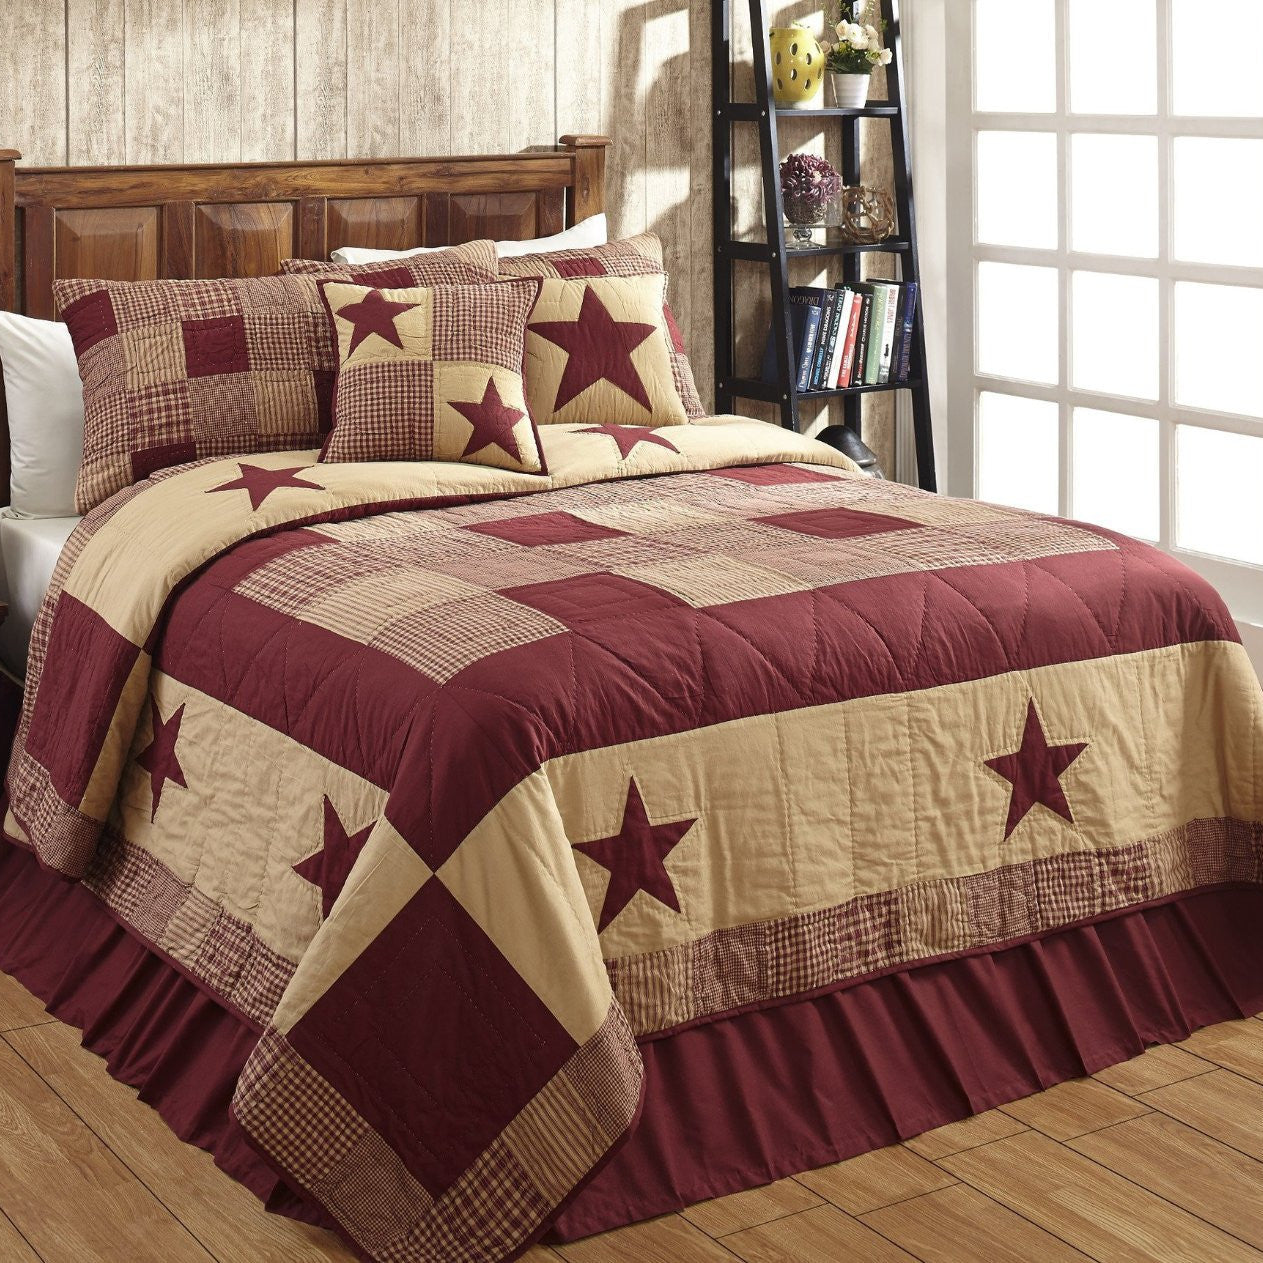 Jamestown Burgundy Tan Quilted Bedding Set 3pc Queen Dl Country Barn